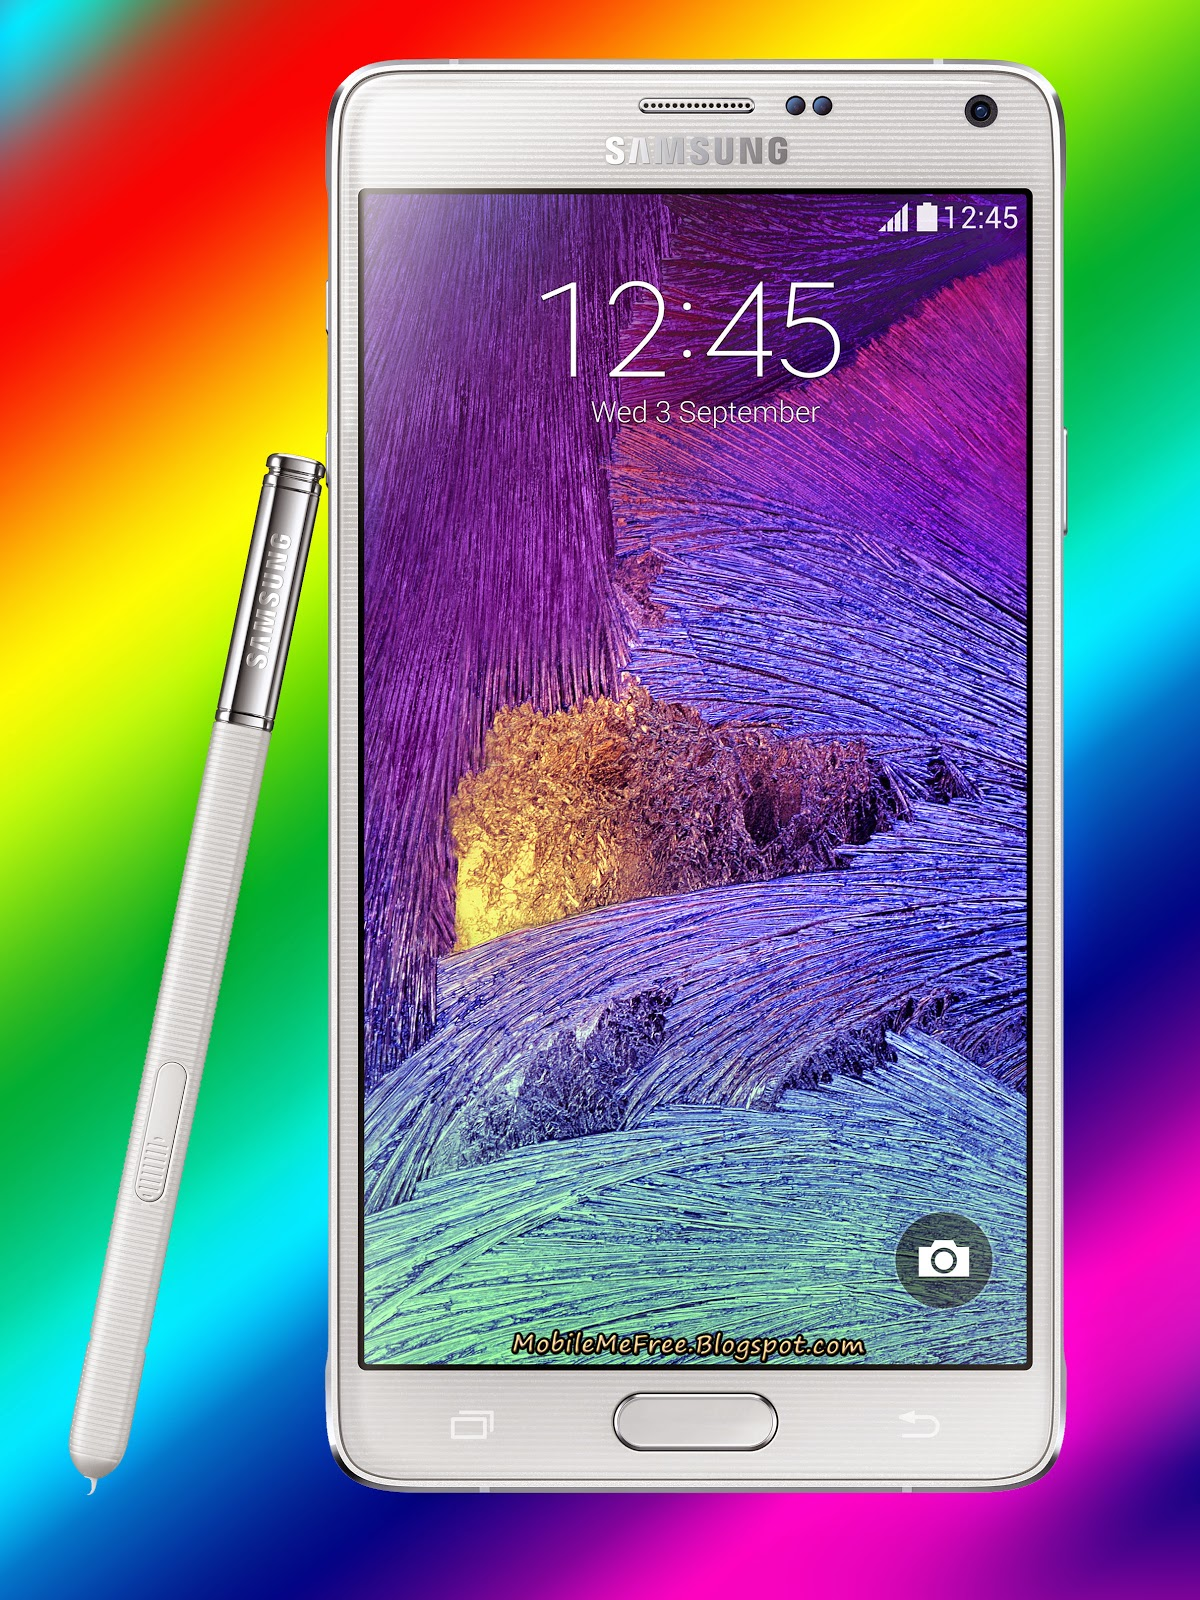 note 4 full hd pictures